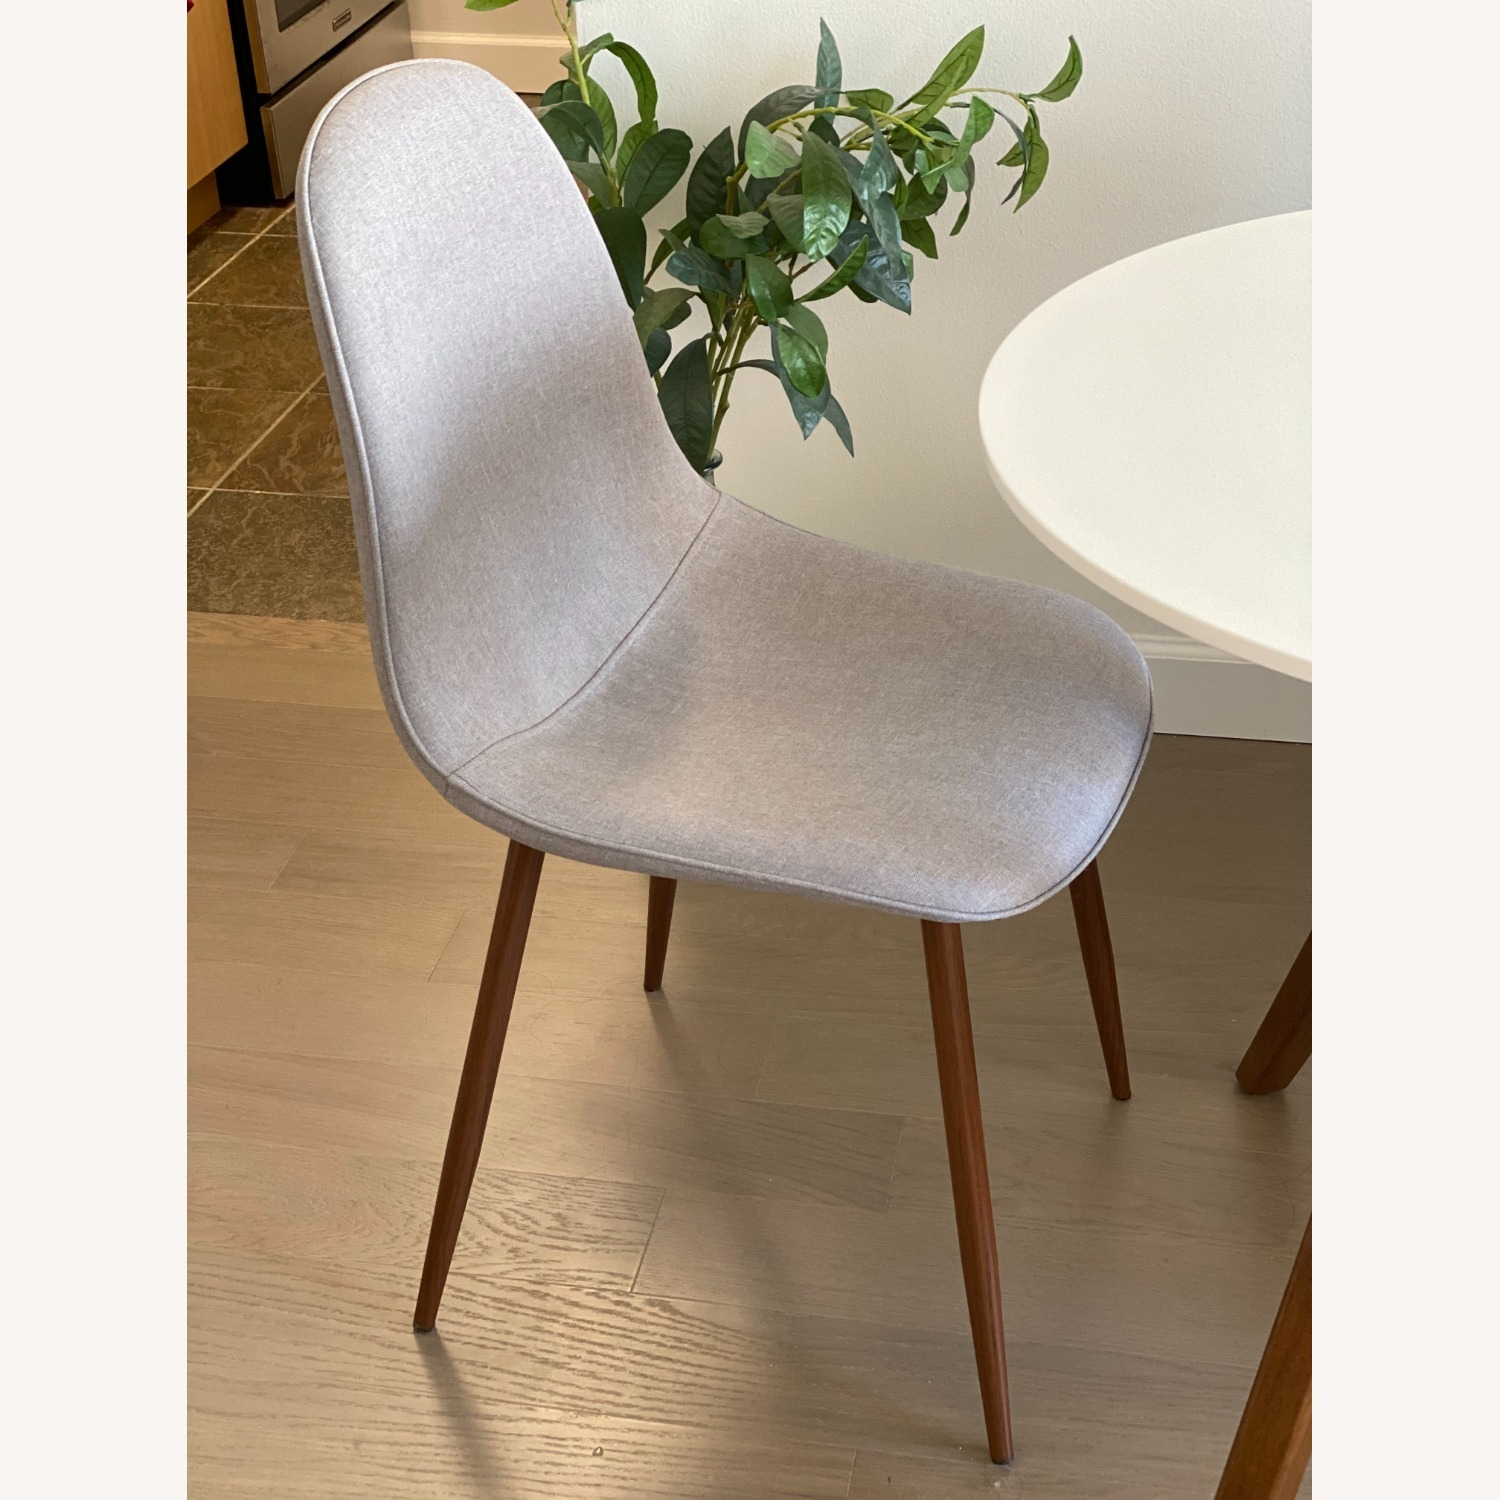 Target Midcentury Bistro Table with 2 Dining Chairs - image-3